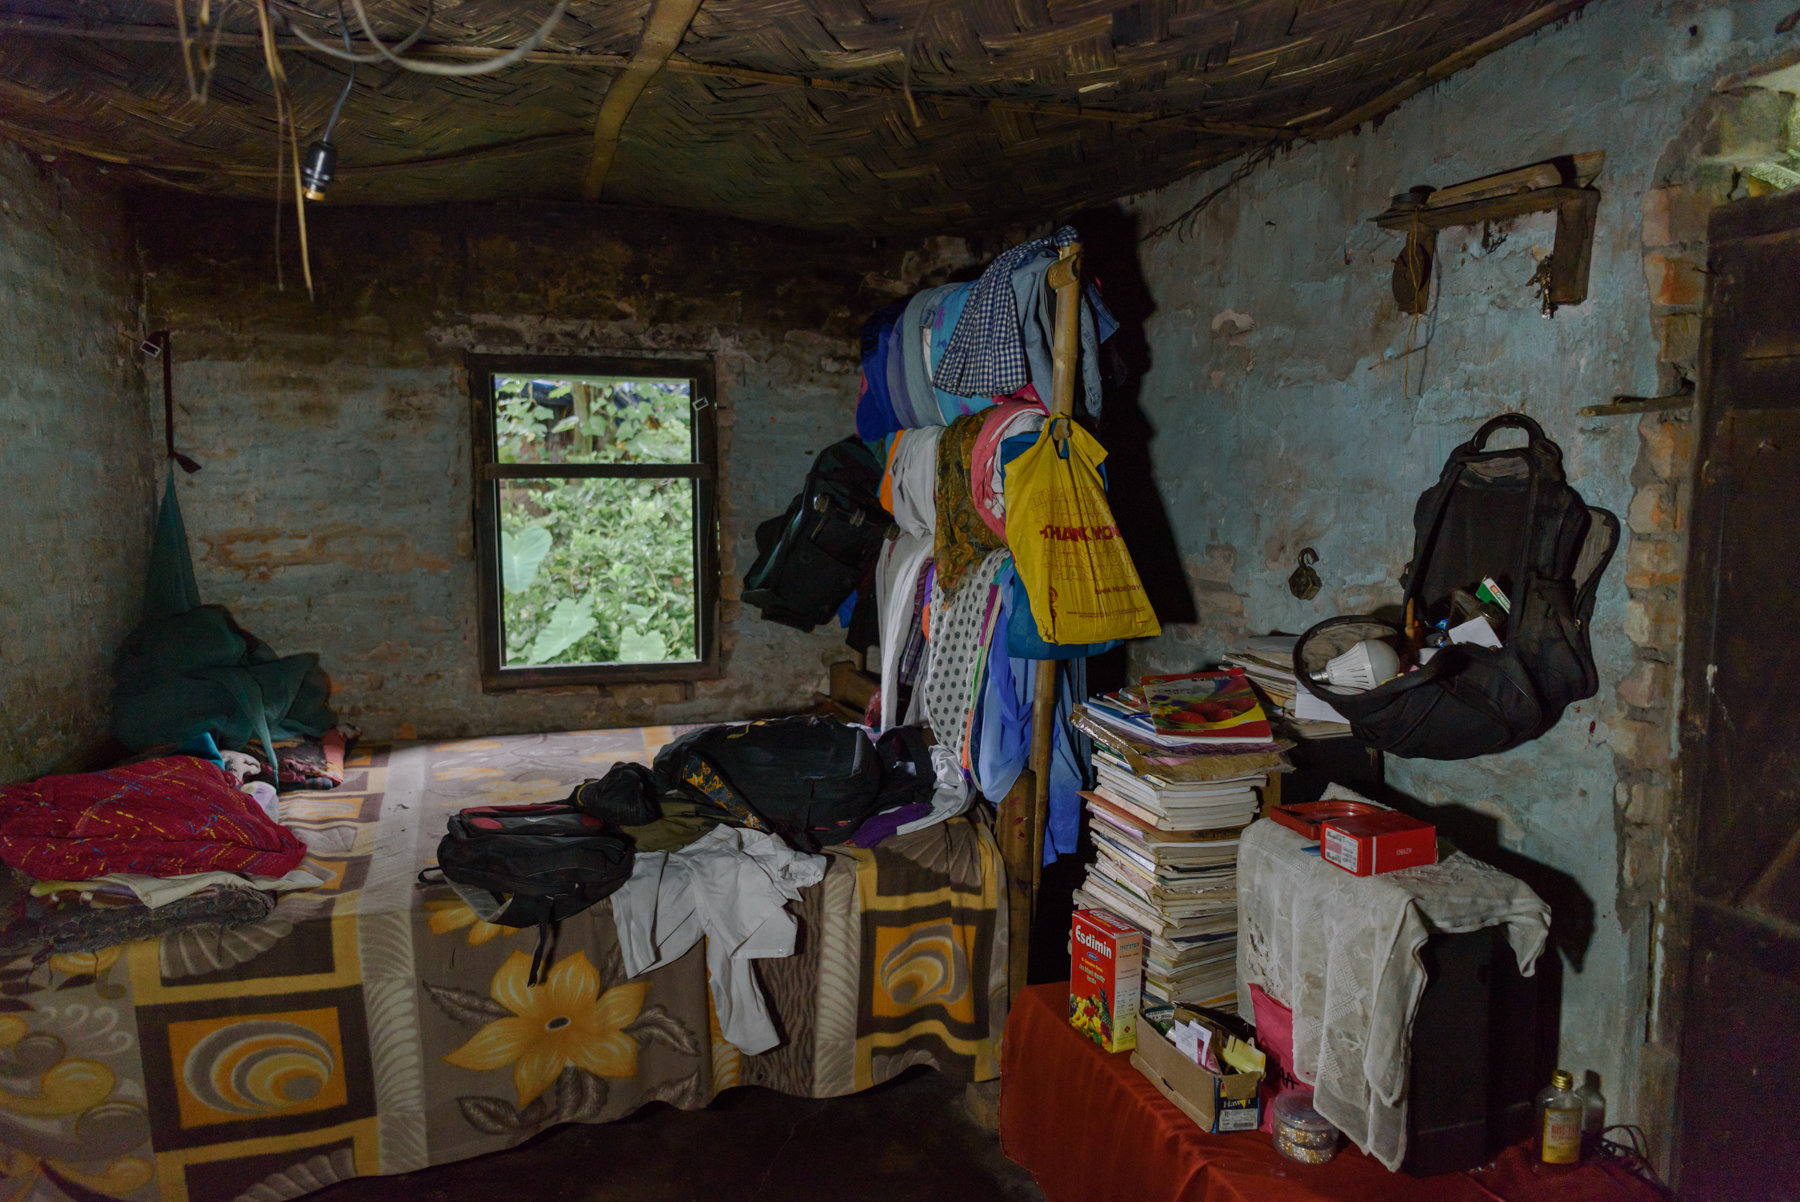 The house of Champa Soren, 35, who was trafficked in 2014 from the Chengmari Tea Garden. Champa used to be severely beaten by her abusive husband. To escape that, Champa fell into the hands of a trafficker who promised her a job and took her to Delhi and sold her for $300. Champa was rescued from Sonipat in July 2017.